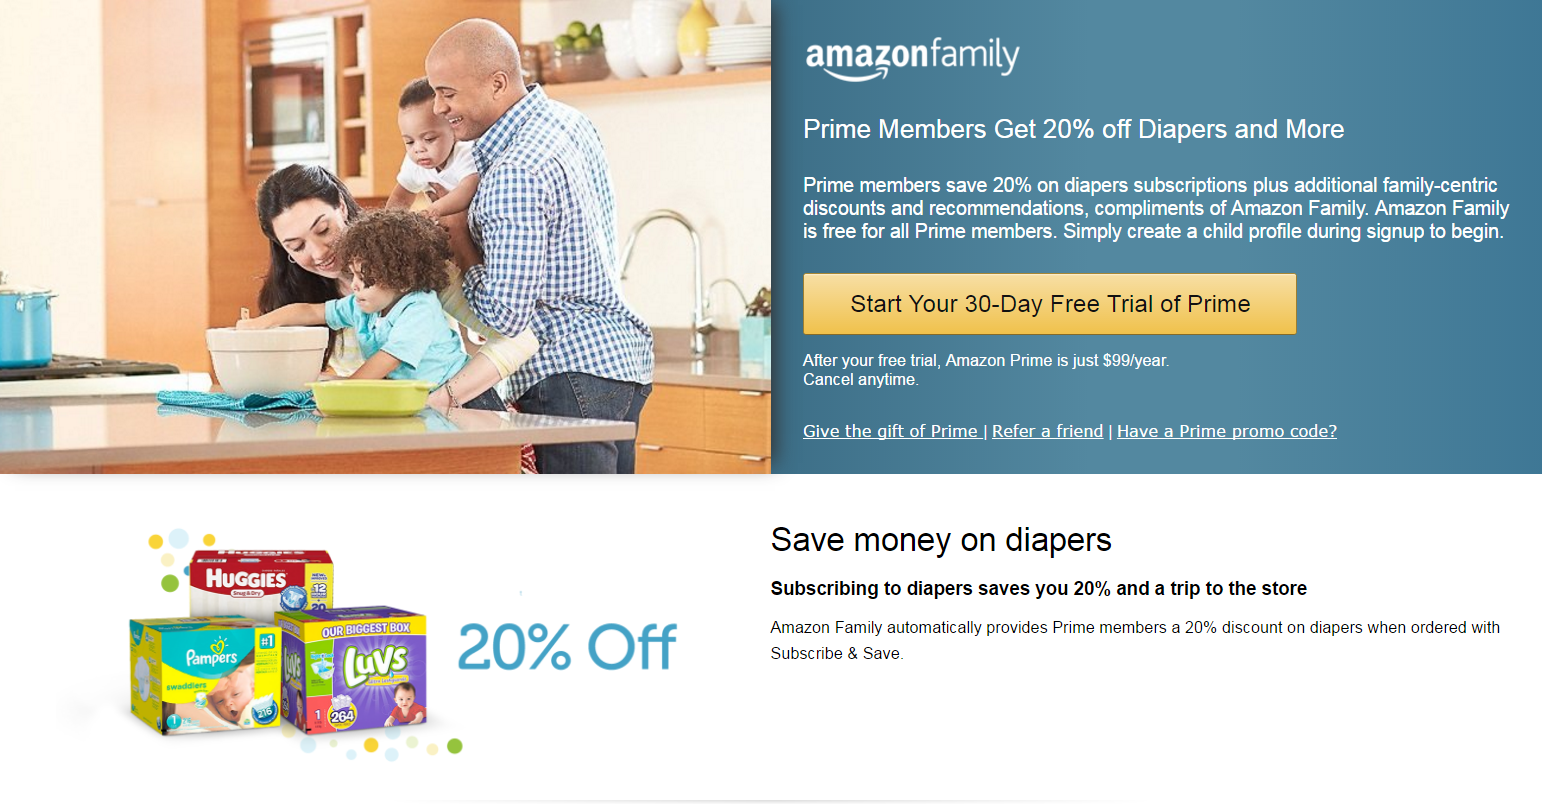 marketing to dads, dad blog, dad bloggers, how to market to dads, rise of the dad bloggers, amazon family,